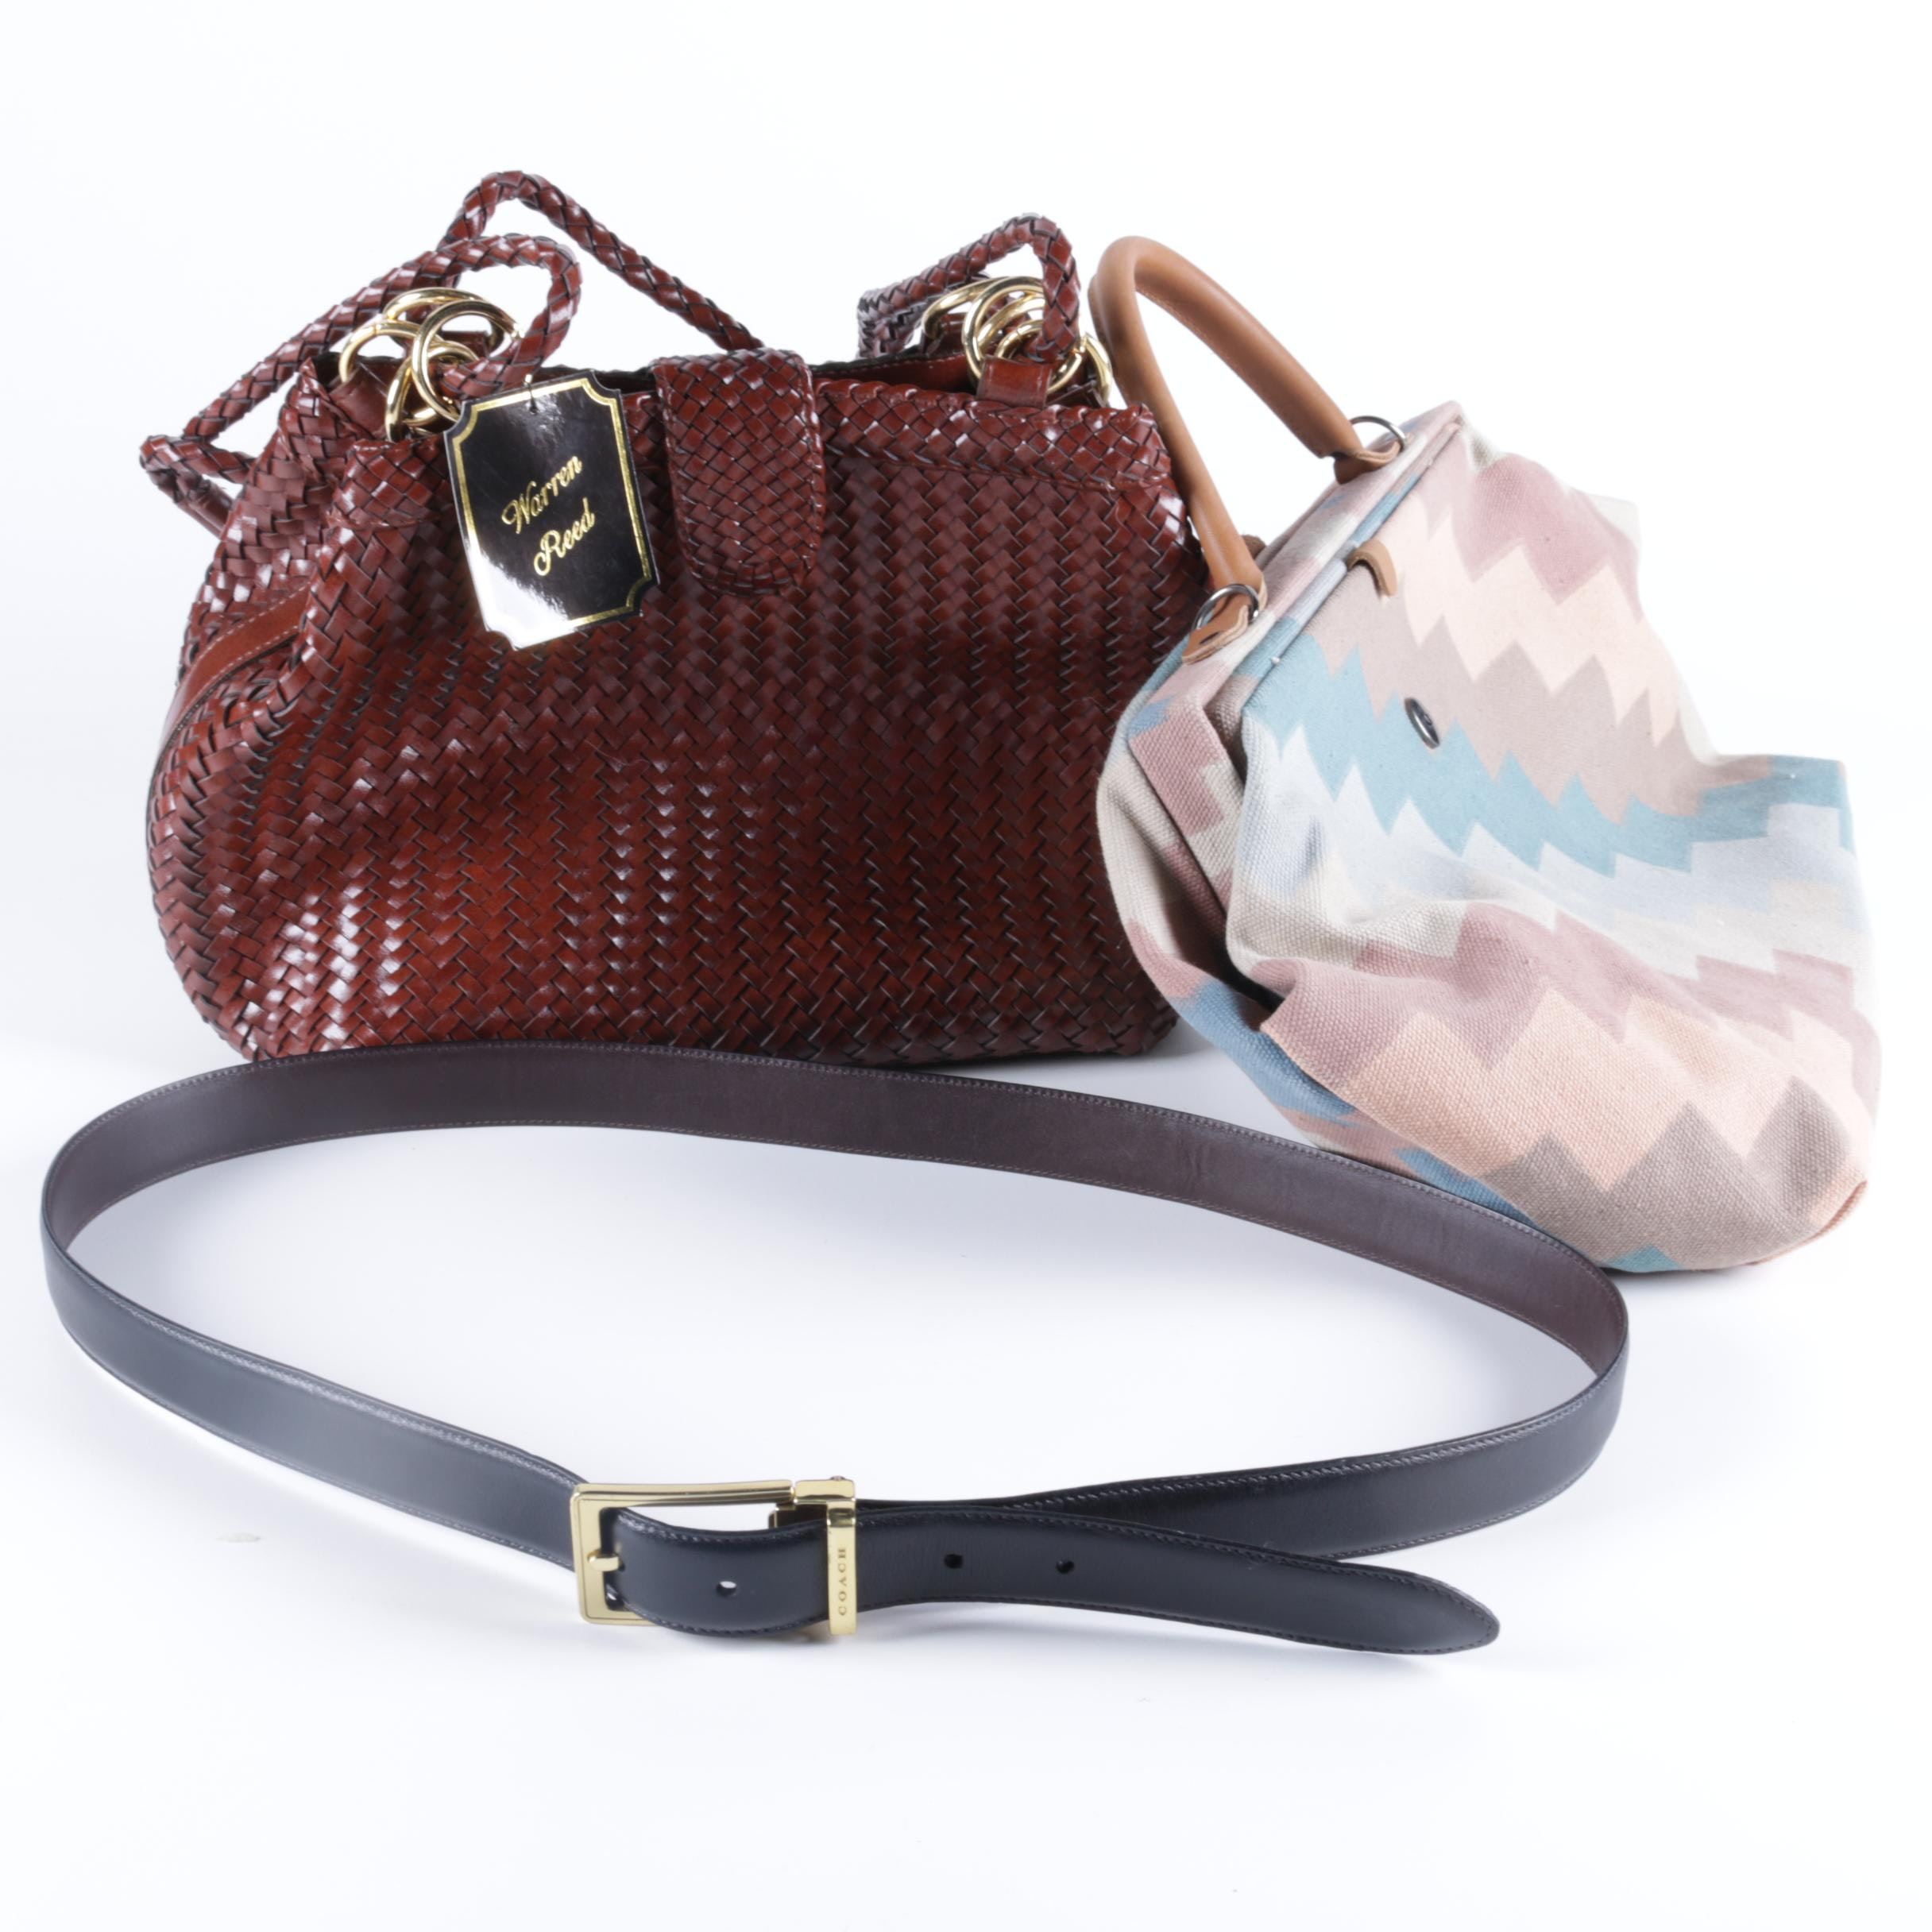 Vintage Handbags and Coach Belt